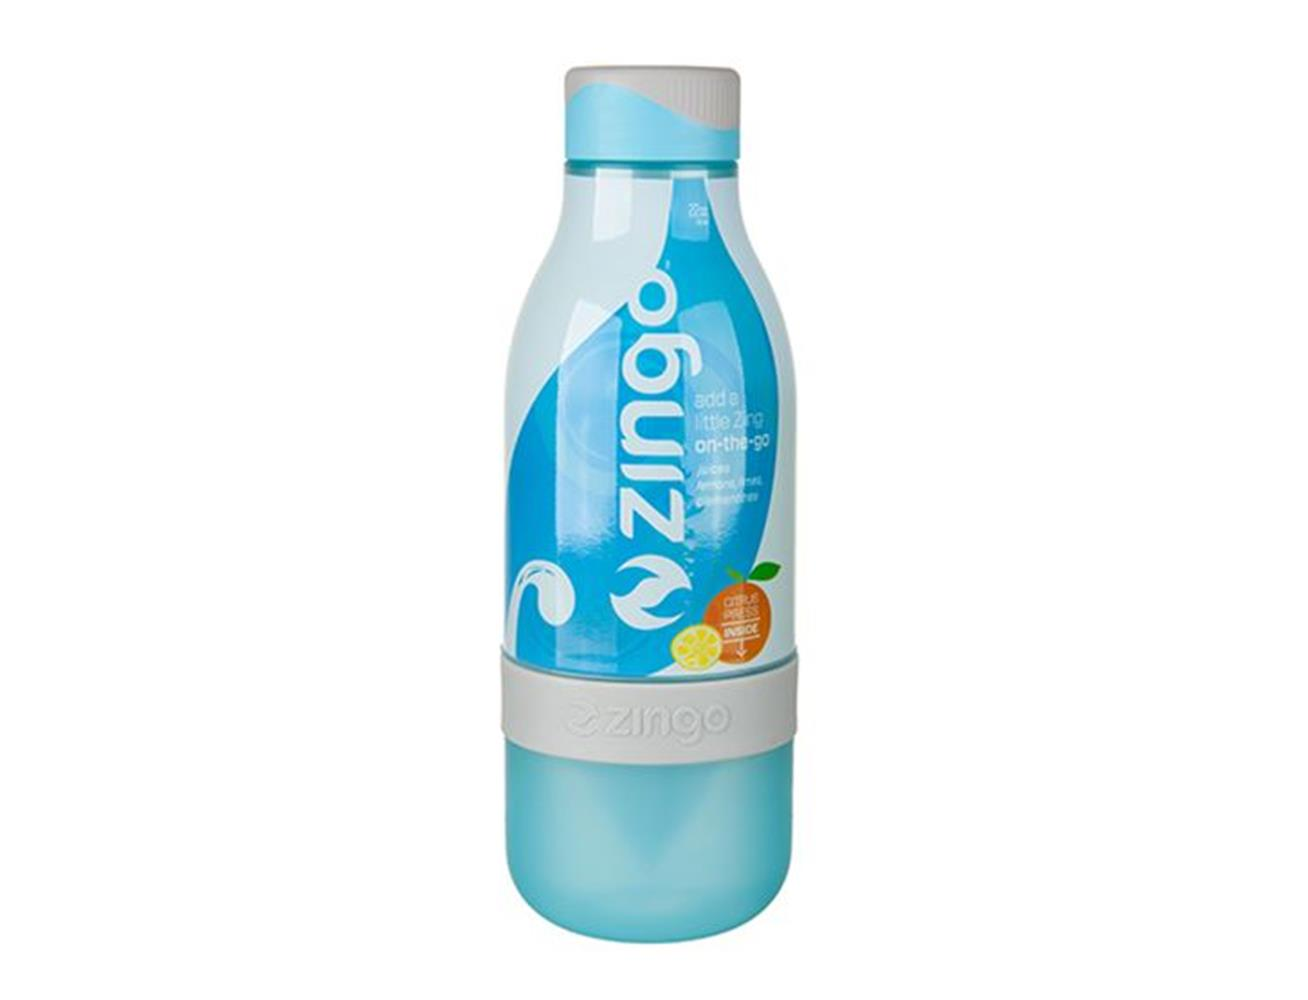 Zing Anything Zingo 22 oz. - Best Price Online | Blink Kuwait